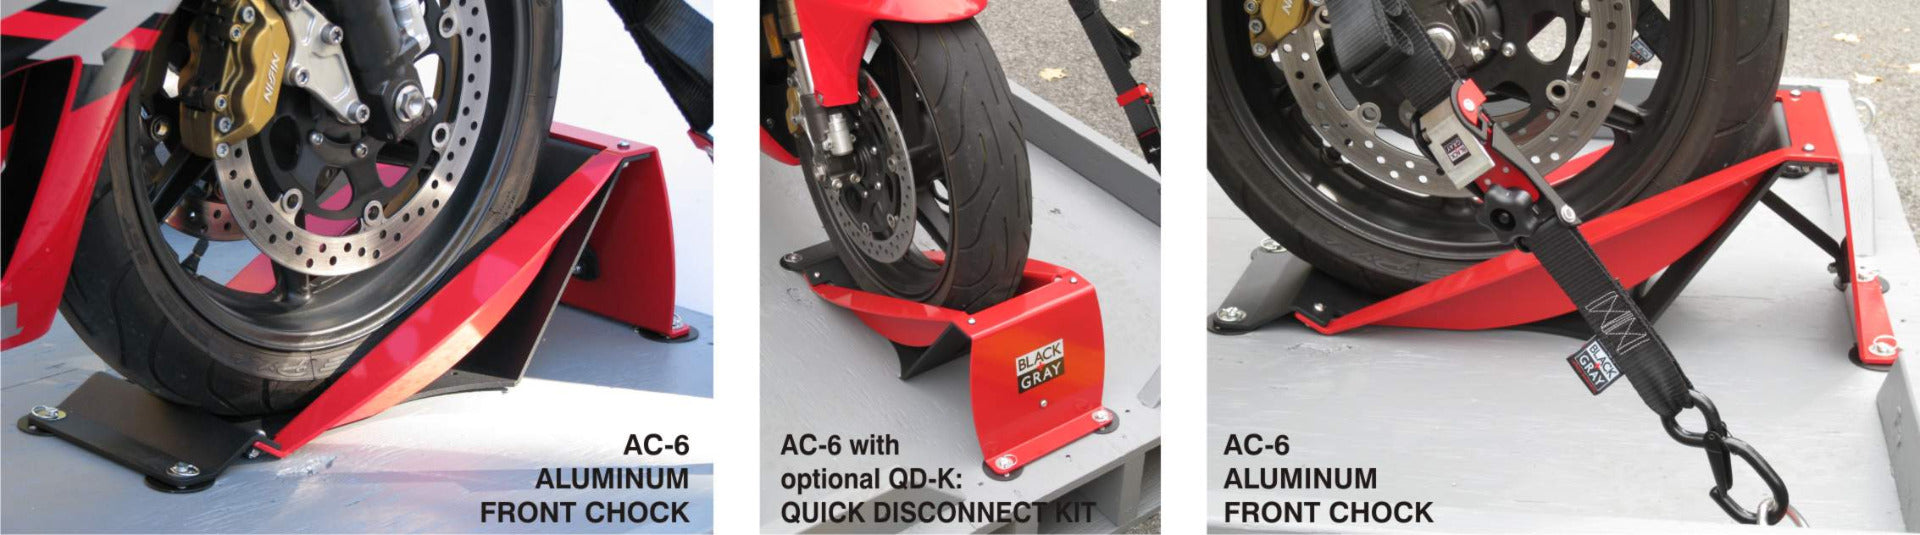 Lightweight Aluminum Motorcycle Wheel Chocks